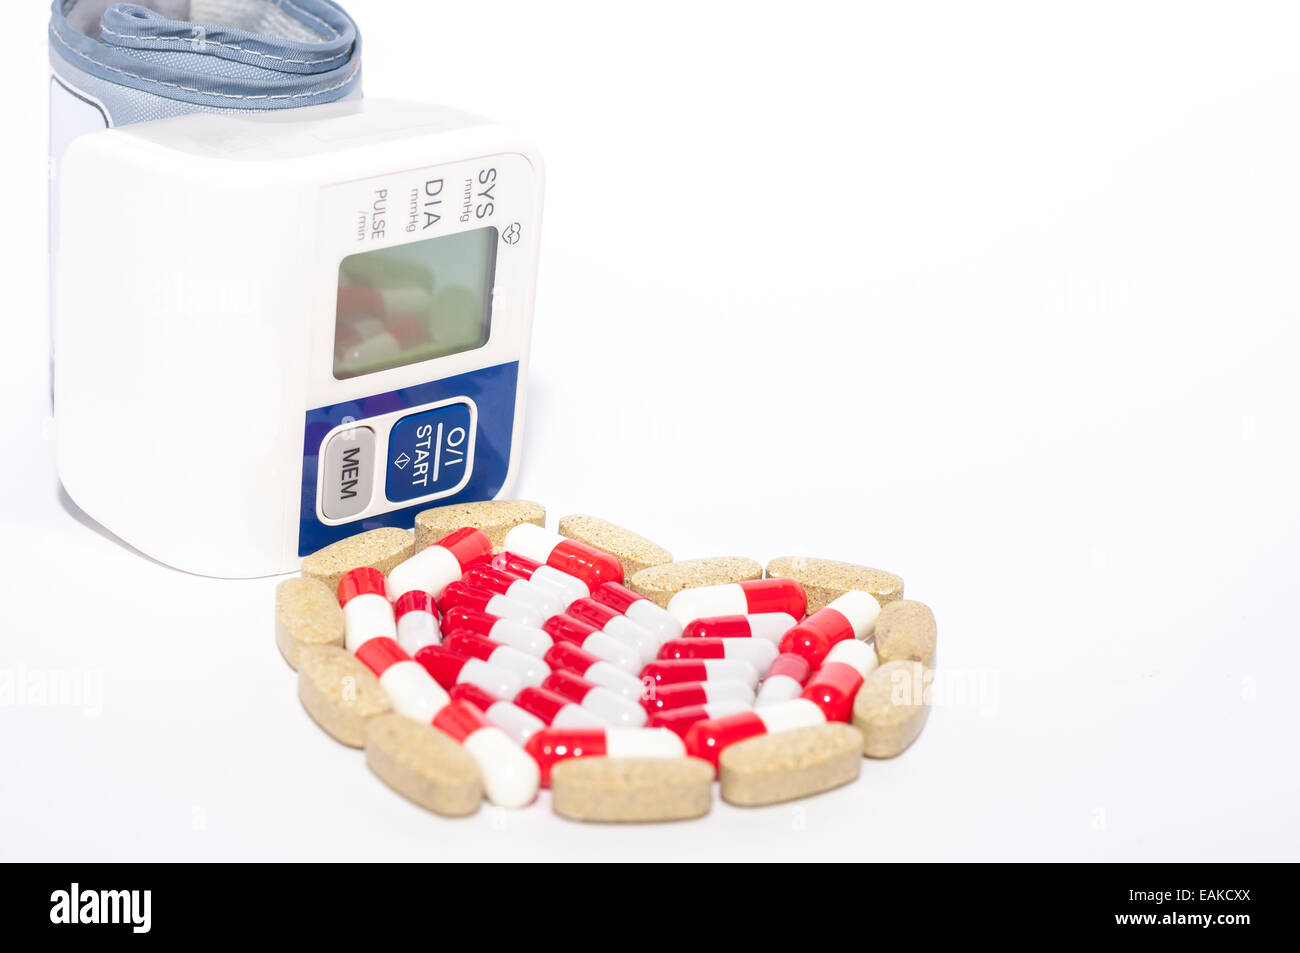 Digital Blood Pressure and heart made of pills on white background - Stock Image